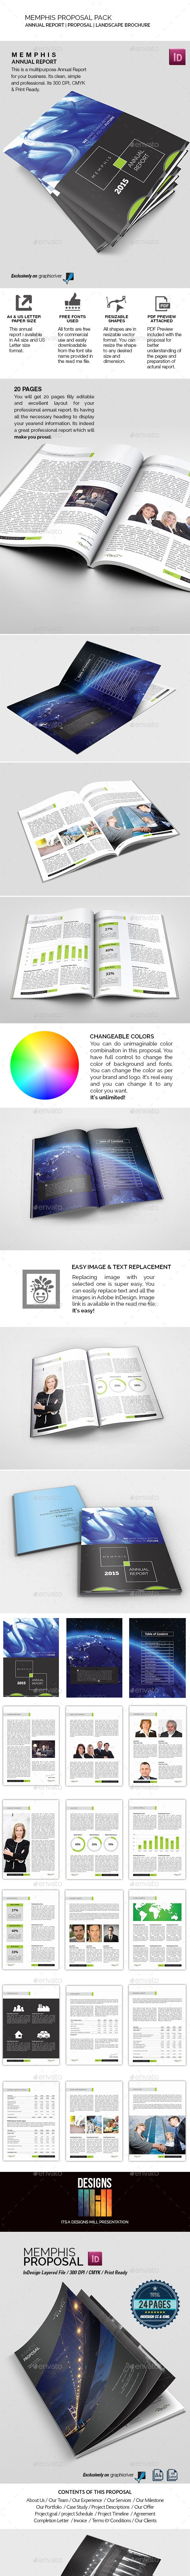 Proposal Pack - Proposals & Invoices Stationery